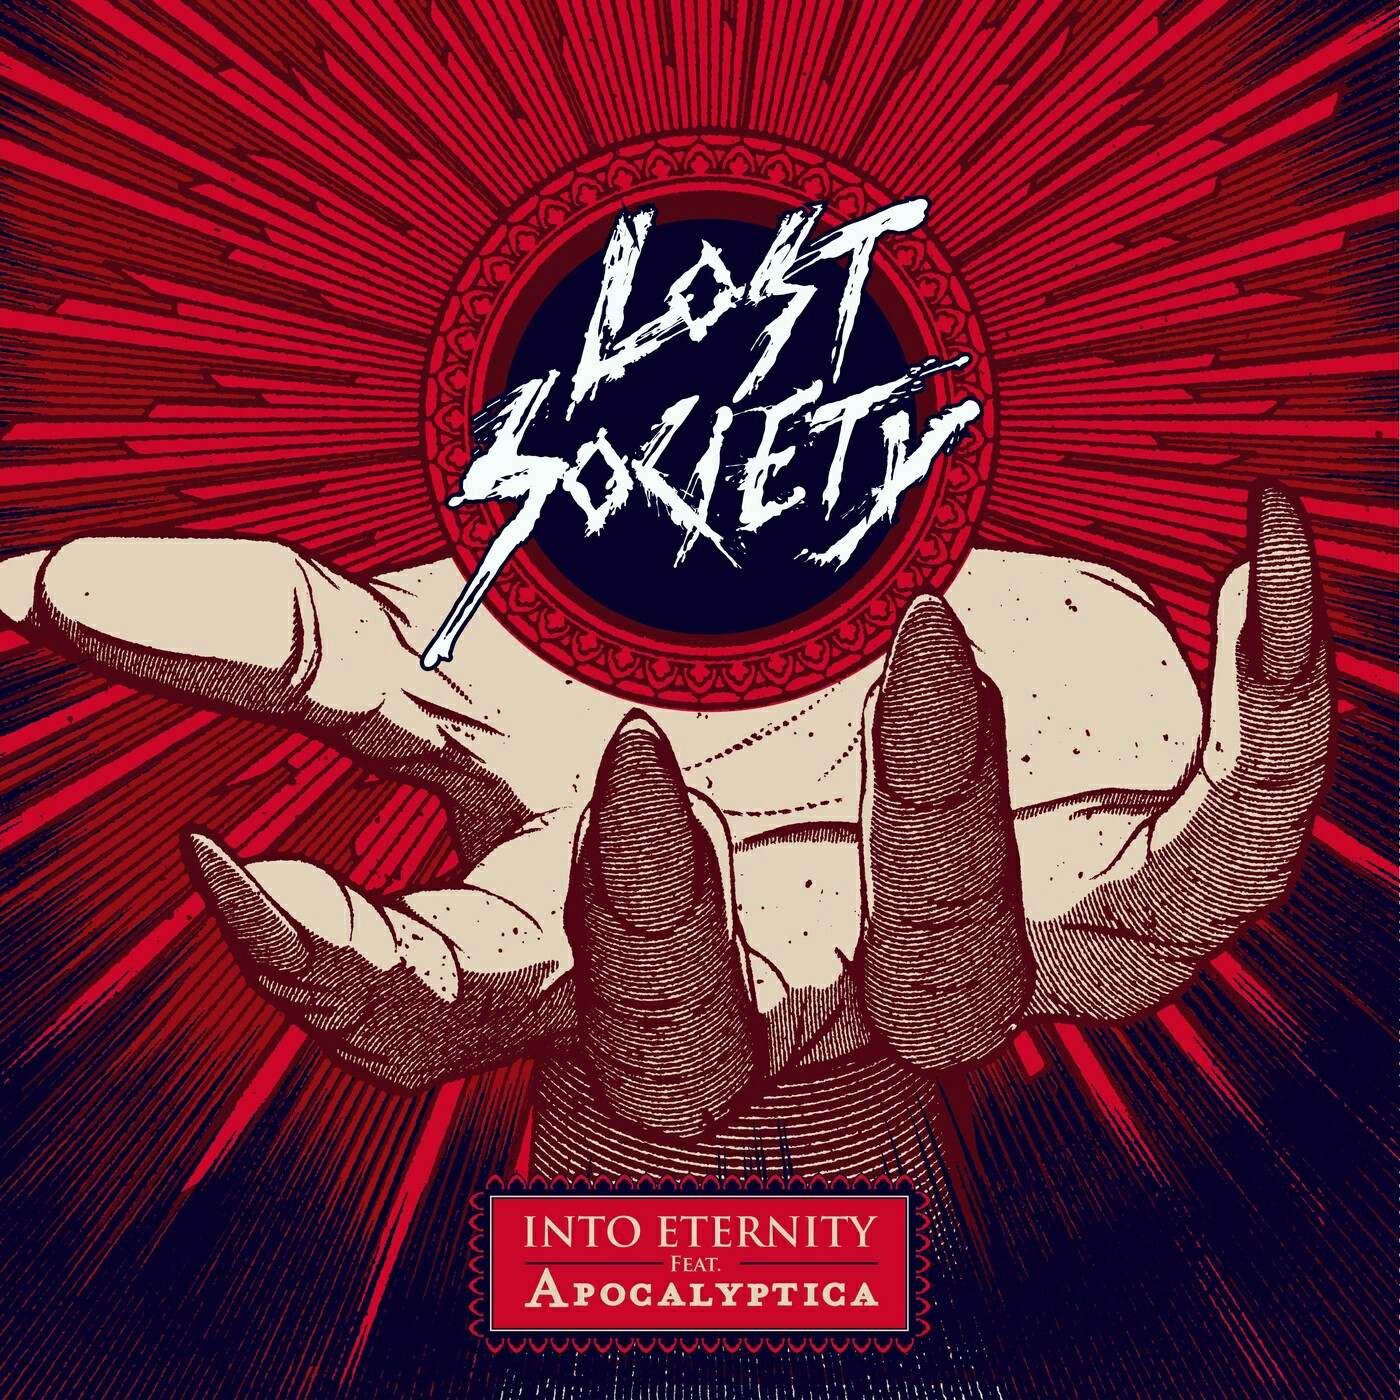 Lost Society - Into Eternity (feat. Apocalyptica) (Single)